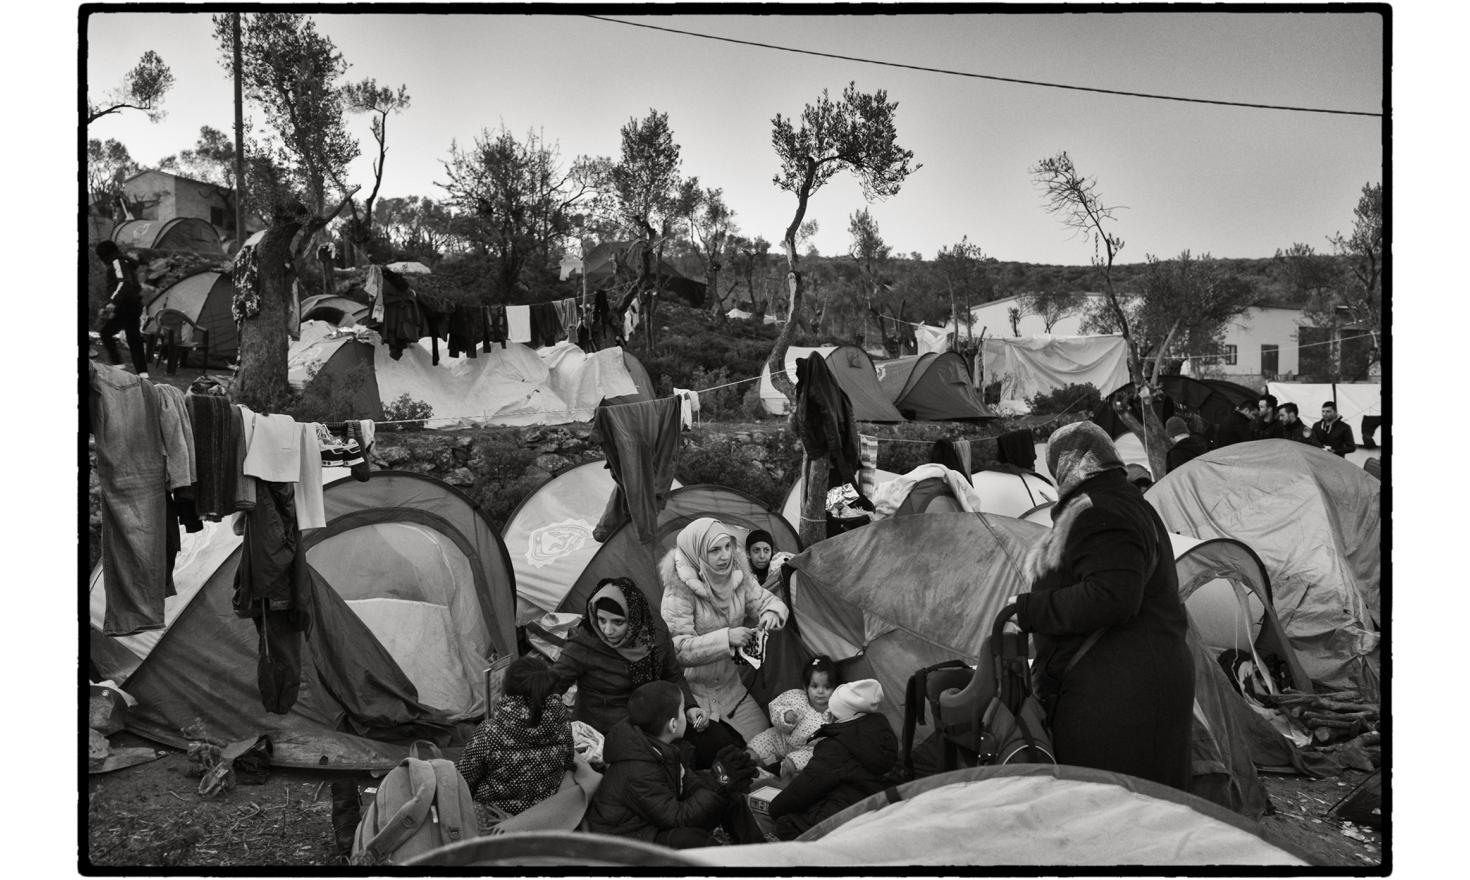 Moria 'Hotspot', Lesbos, Greece. When darkness falls, many of them have to spend the night in what was originally a transit camp. Here danger lurks and overcrowding is the norm, creating an additional source of anxiety for the women